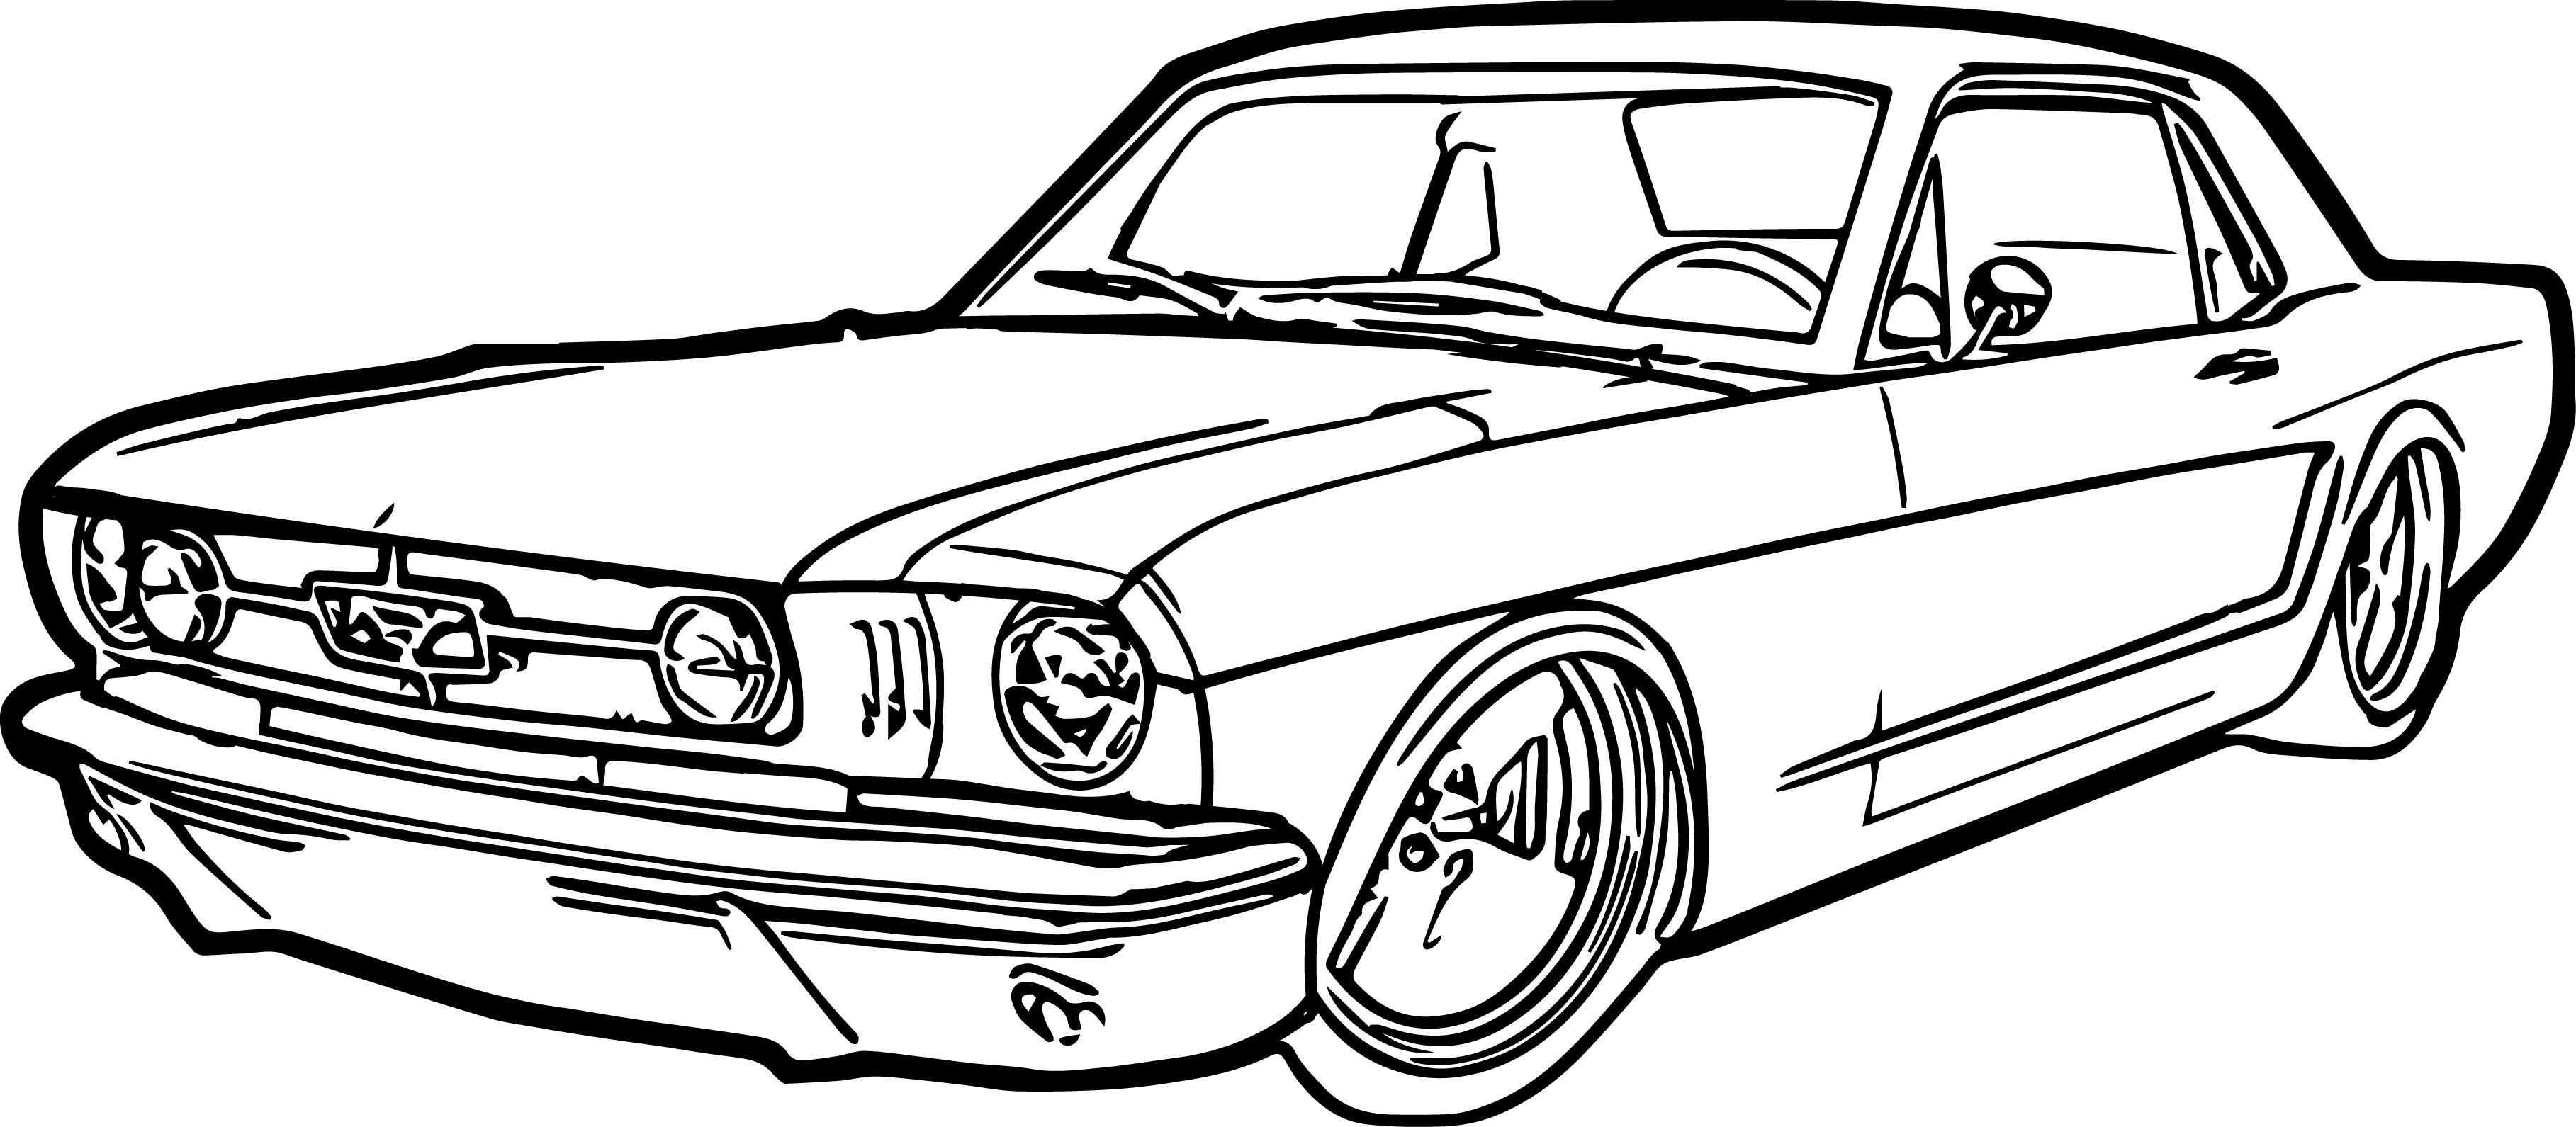 3635x1591 Ford Mustang Gt Coloring Page Free Printable Pages Throughout